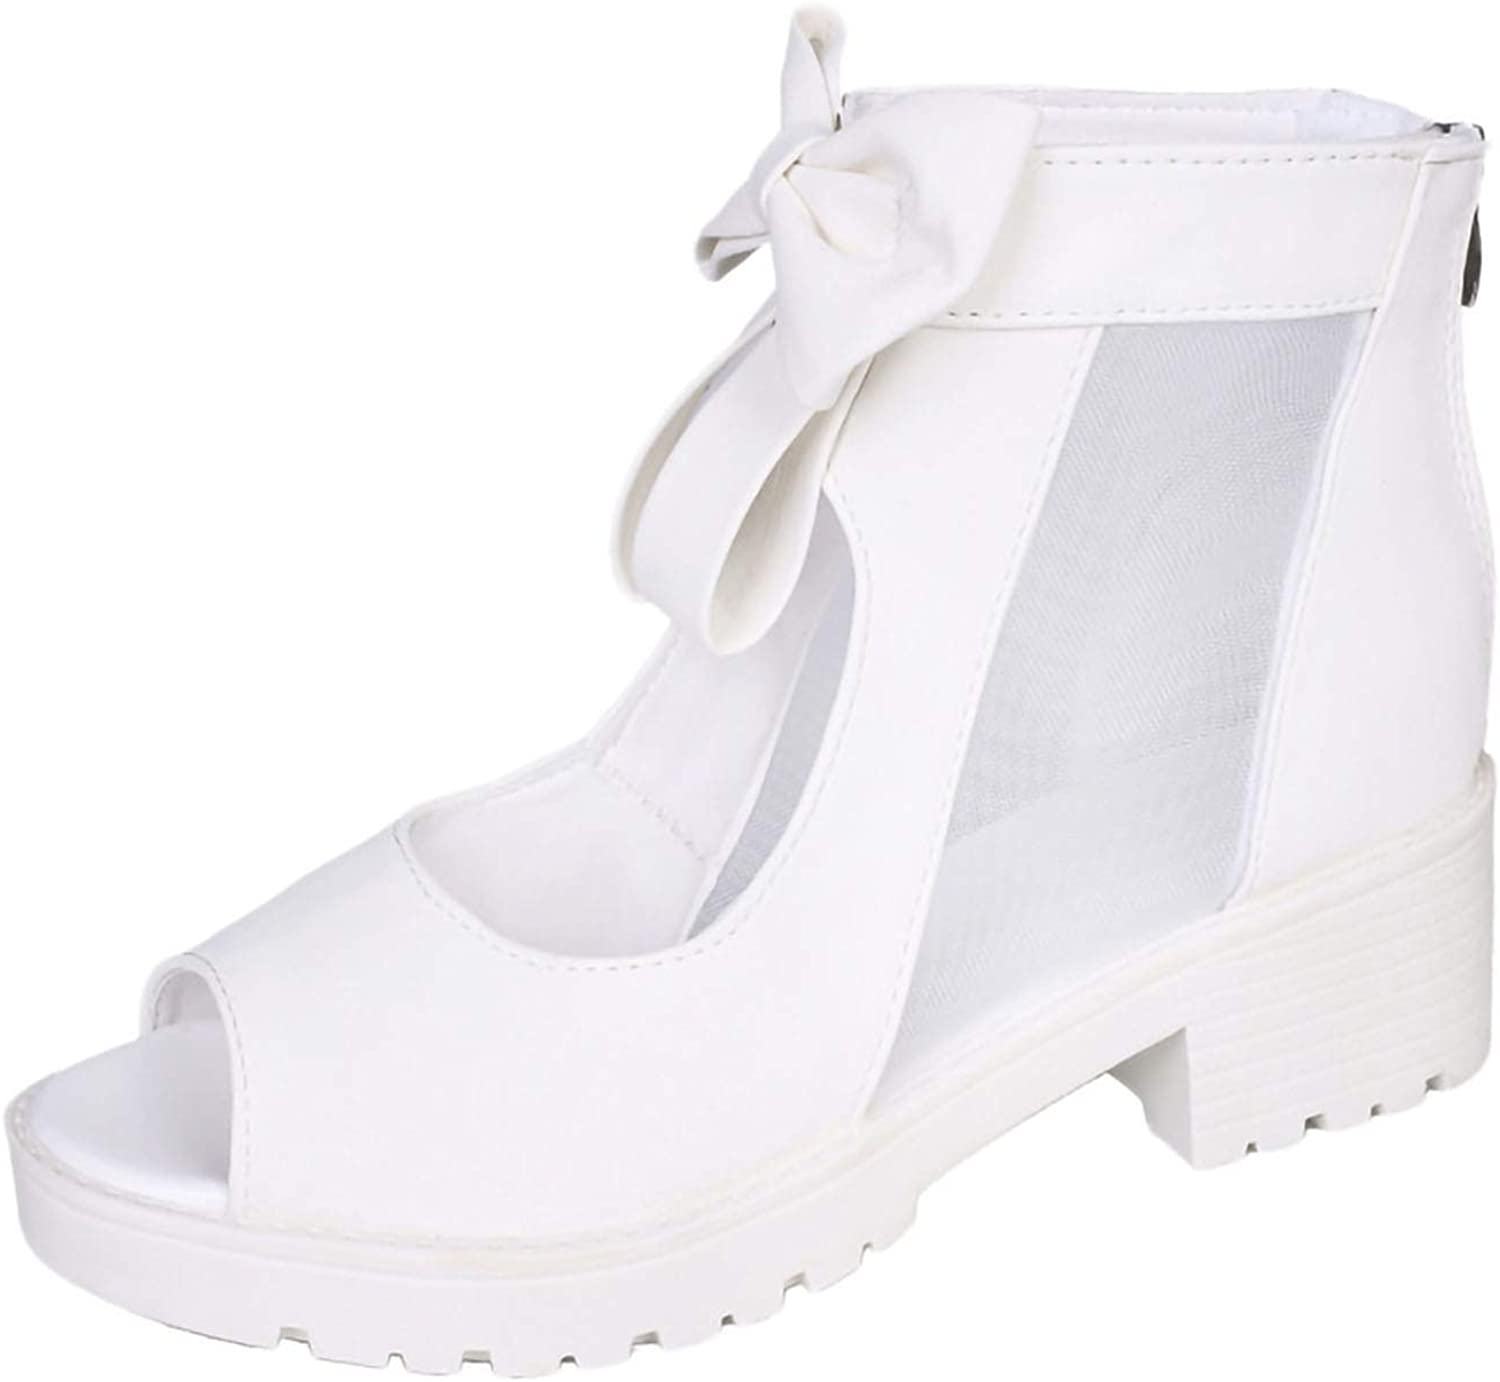 Heels White Summer Women High Heels Breathable Sandals Fashion Solid Bow Zipper shoes